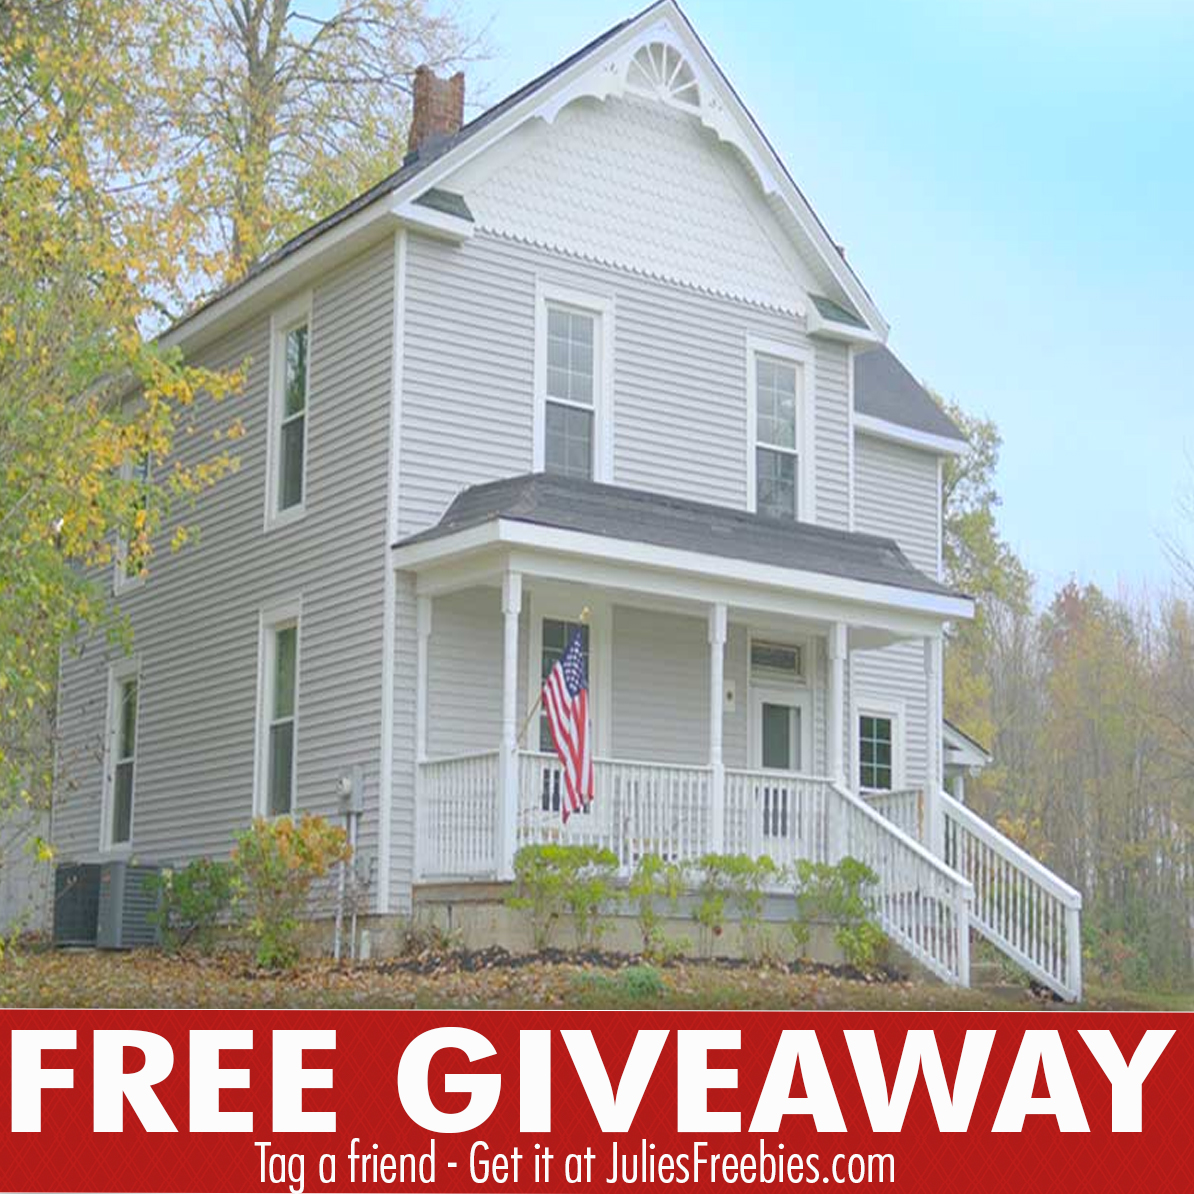 Champion windows and home exteriors 50 000 2018 giveaway - Champion home exteriors glassdoor ...